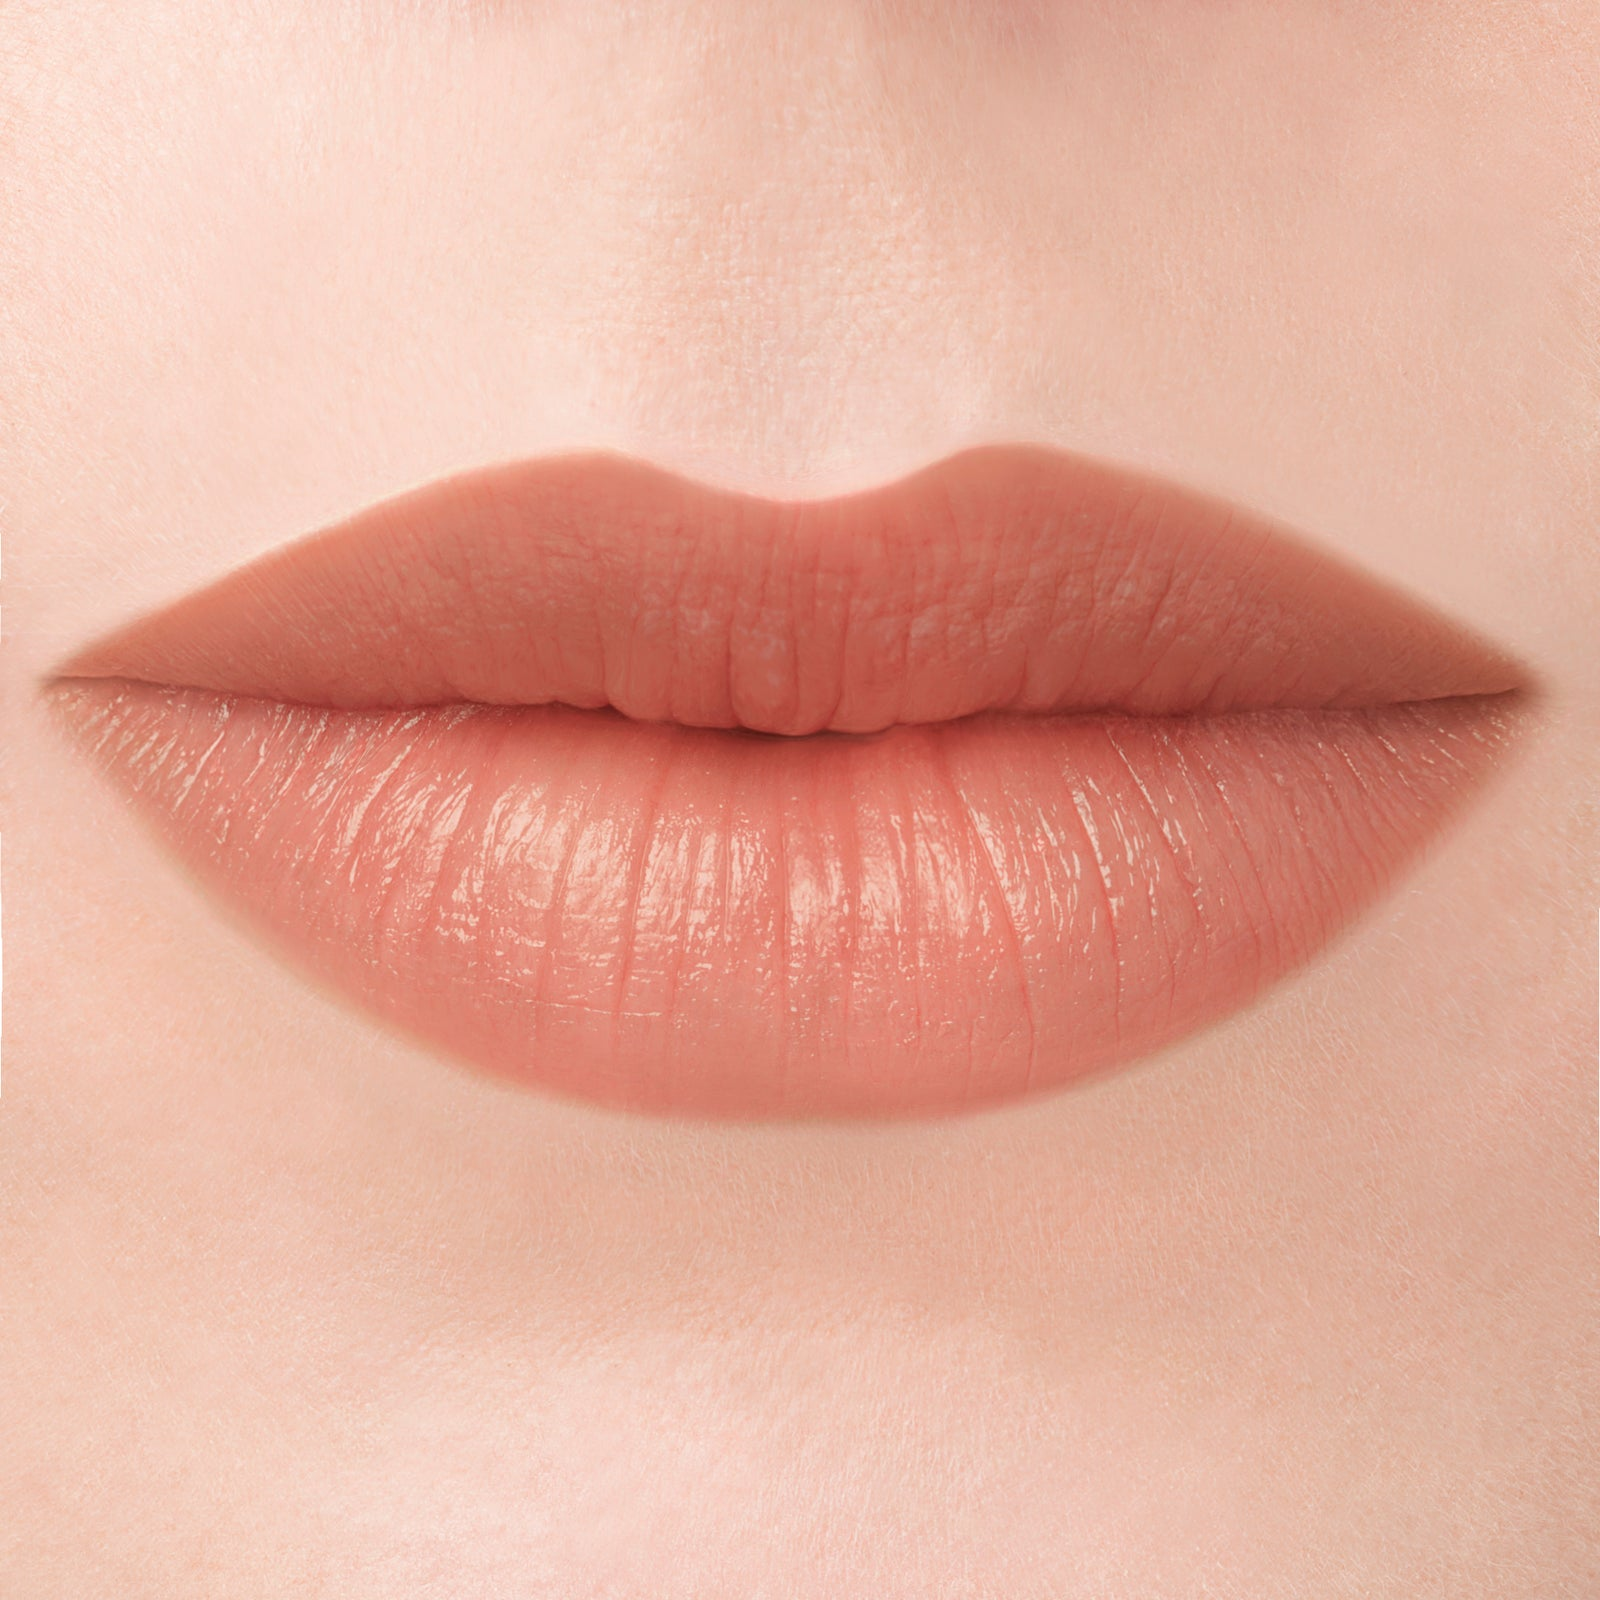 Narcissus | Enchanted Lip Sheer - Rituel de Fille